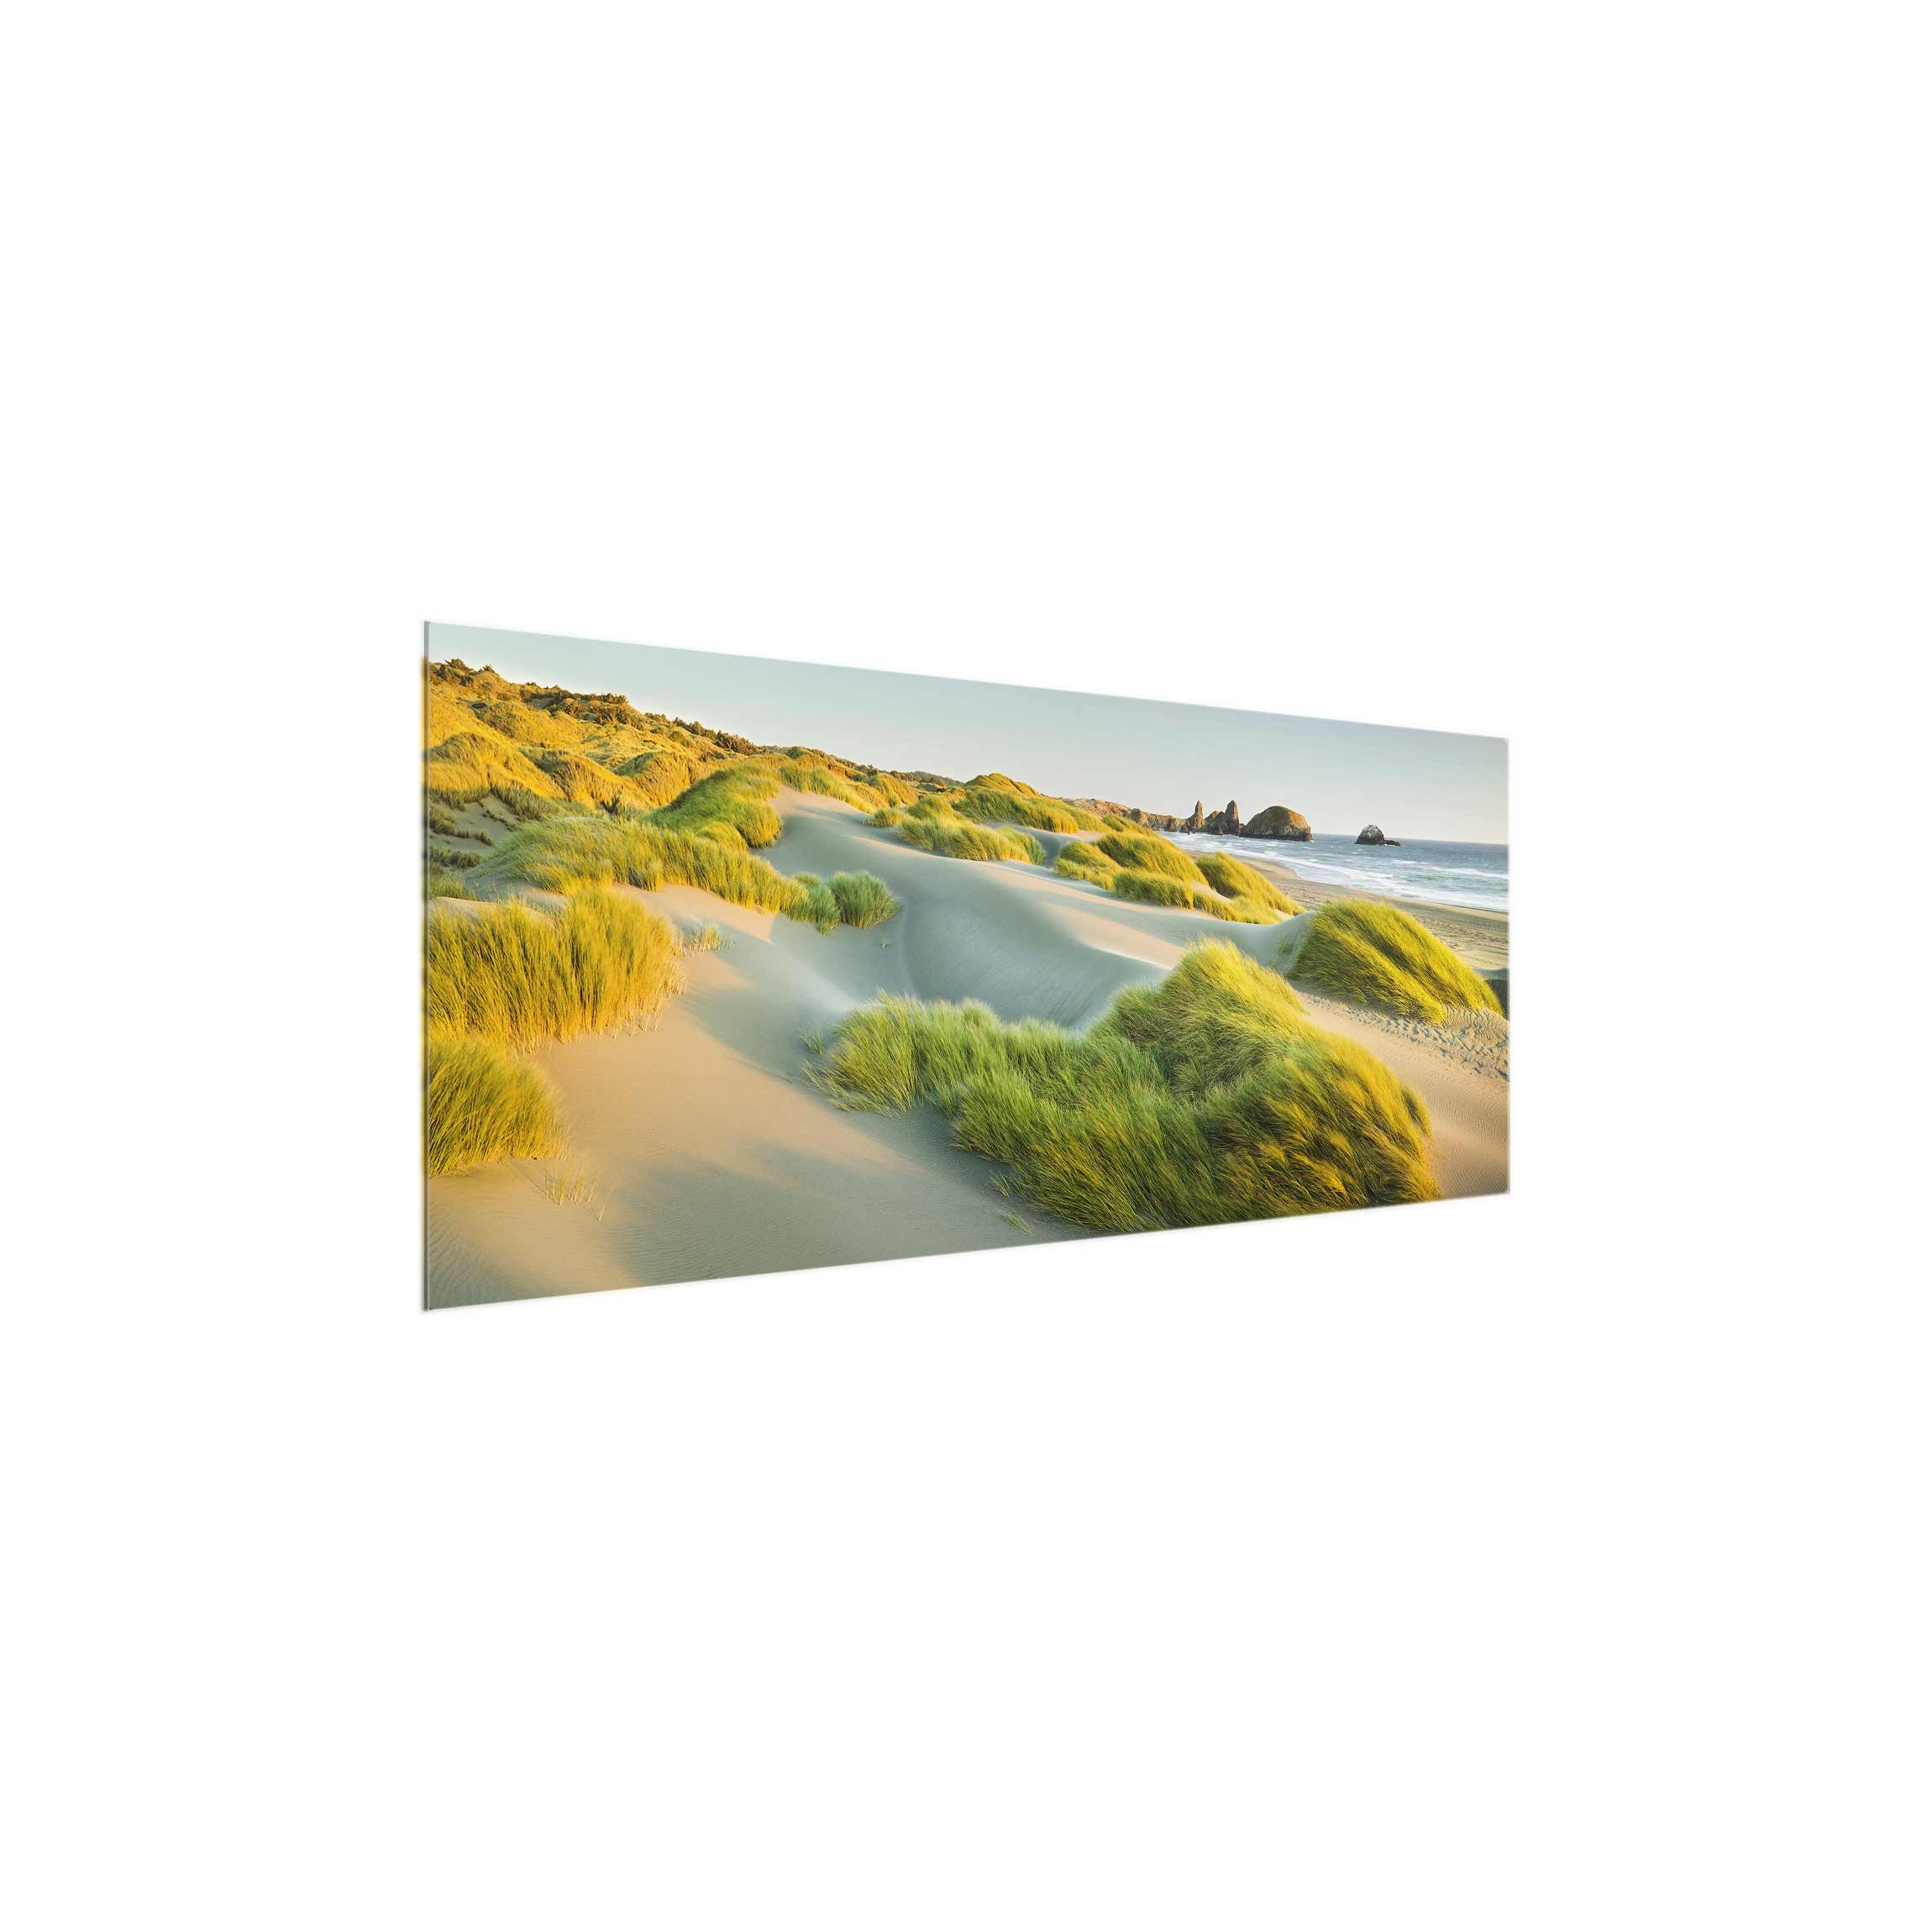 beach on the North Sea wall picture Panorama Wide print on glass,glass print,glass picture,wall mural,glass image,wall art,glass wall picture Print on Glass Wall Art Dimension HxW: 30cm x 80cm glass printing